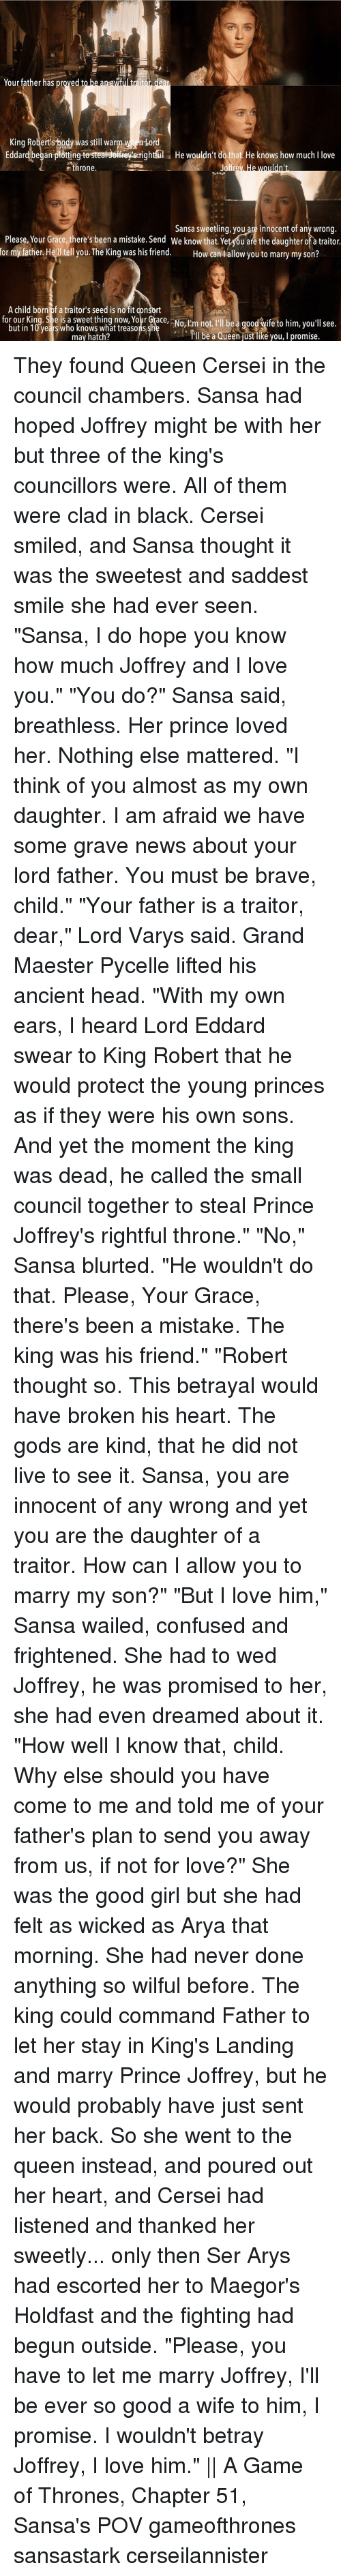 """Lord Varis: aitor  Your father has proved to  dea  King Roberts body was still war  Lord  Eddard began plotting to Steal Joffrey grightful He wouldn't do  that He knows how much Ilove  throne  Joffr  Sansa sweetling, you are innocent of any wrong.  Please, Your Grace, there's been a mistake. Send We know that Yetyou are the daughter of a traitor.  for my father. He tell you. The King was his friend  How can allow you to marry my son?  A child born of a traitor's seed is no fit consort  for our King. She is a sweet thing now, Your Grace,  but in 10 years who knows what treasons she Nor Lot be good Wite to him  Tll be a Queen justlike you, I promise.  may hatch? They found Queen Cersei in the council chambers. Sansa had hoped Joffrey might be with her but three of the king's councillors were. All of them were clad in black. Cersei smiled, and Sansa thought it was the sweetest and saddest smile she had ever seen. """"Sansa, I do hope you know how much Joffrey and I love you."""" """"You do?"""" Sansa said, breathless. Her prince loved her. Nothing else mattered. """"I think of you almost as my own daughter. I am afraid we have some grave news about your lord father. You must be brave, child."""" """"Your father is a traitor, dear,"""" Lord Varys said. Grand Maester Pycelle lifted his ancient head. """"With my own ears, I heard Lord Eddard swear to King Robert that he would protect the young princes as if they were his own sons. And yet the moment the king was dead, he called the small council together to steal Prince Joffrey's rightful throne."""" """"No,"""" Sansa blurted. """"He wouldn't do that. Please, Your Grace, there's been a mistake. The king was his friend."""" """"Robert thought so. This betrayal would have broken his heart. The gods are kind, that he did not live to see it. Sansa, you are innocent of any wrong and yet you are the daughter of a traitor. How can I allow you to marry my son?"""" """"But I love him,"""" Sansa wailed, confused and frightened. She had to wed Joffrey, he was promised to her, she had e"""